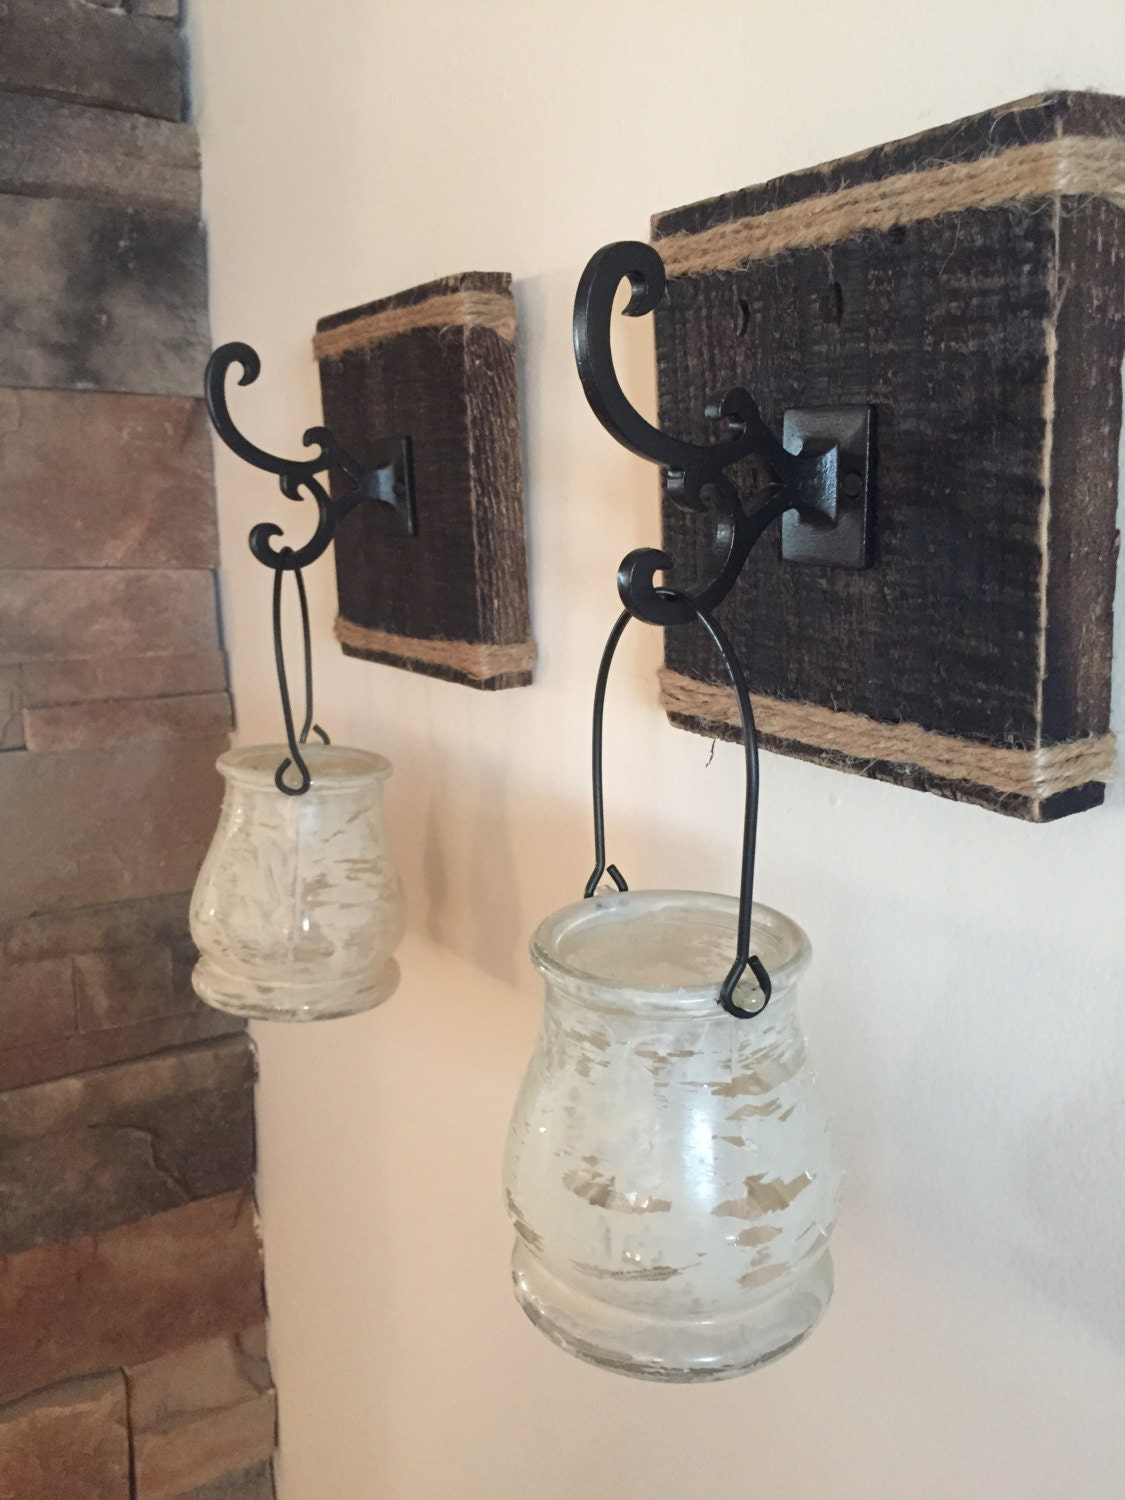 Wall Candle Sconces Etsy : Rustic Reclaimed Wood Candle Holder Wall Sconce Set of Two